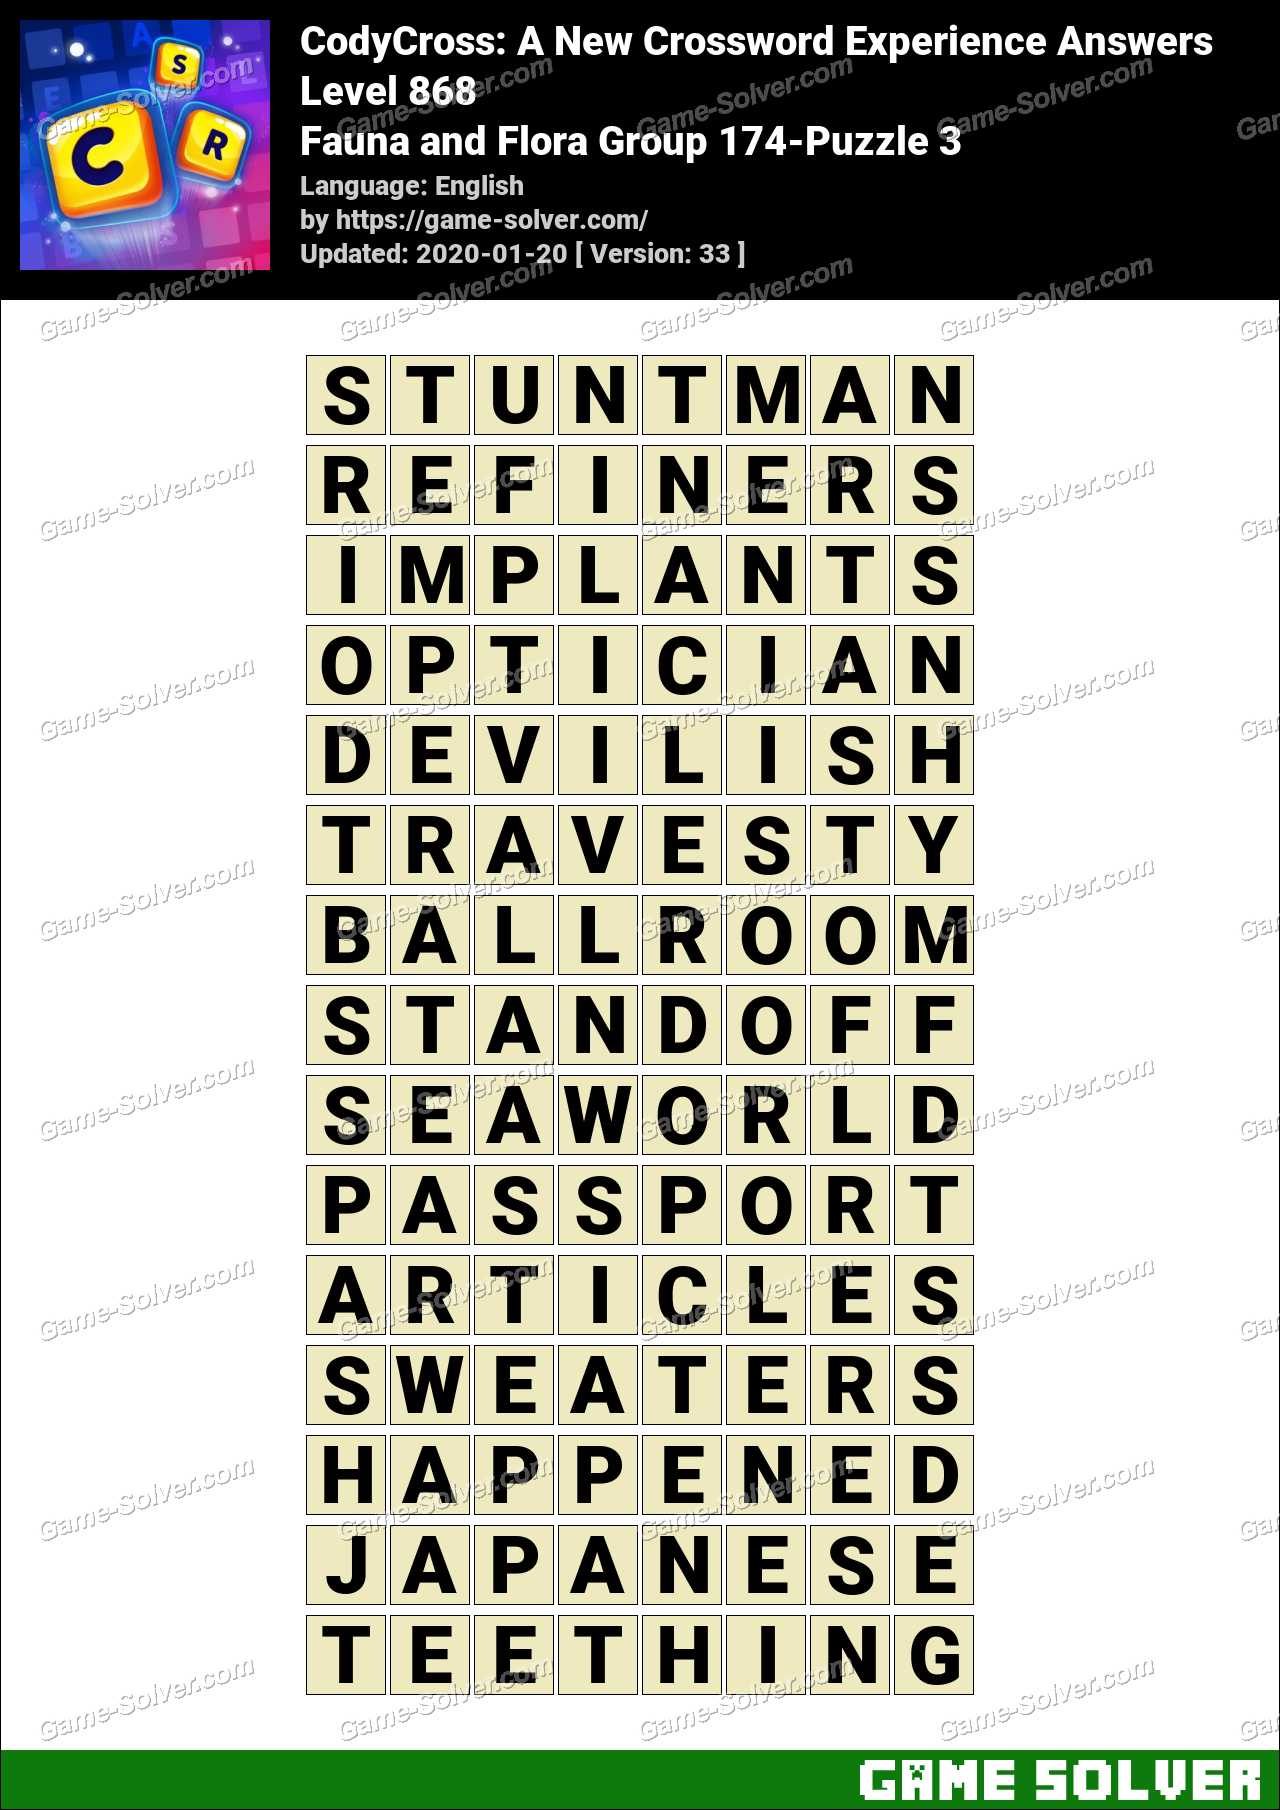 CodyCross Fauna and Flora Group 174-Puzzle 3 Answers